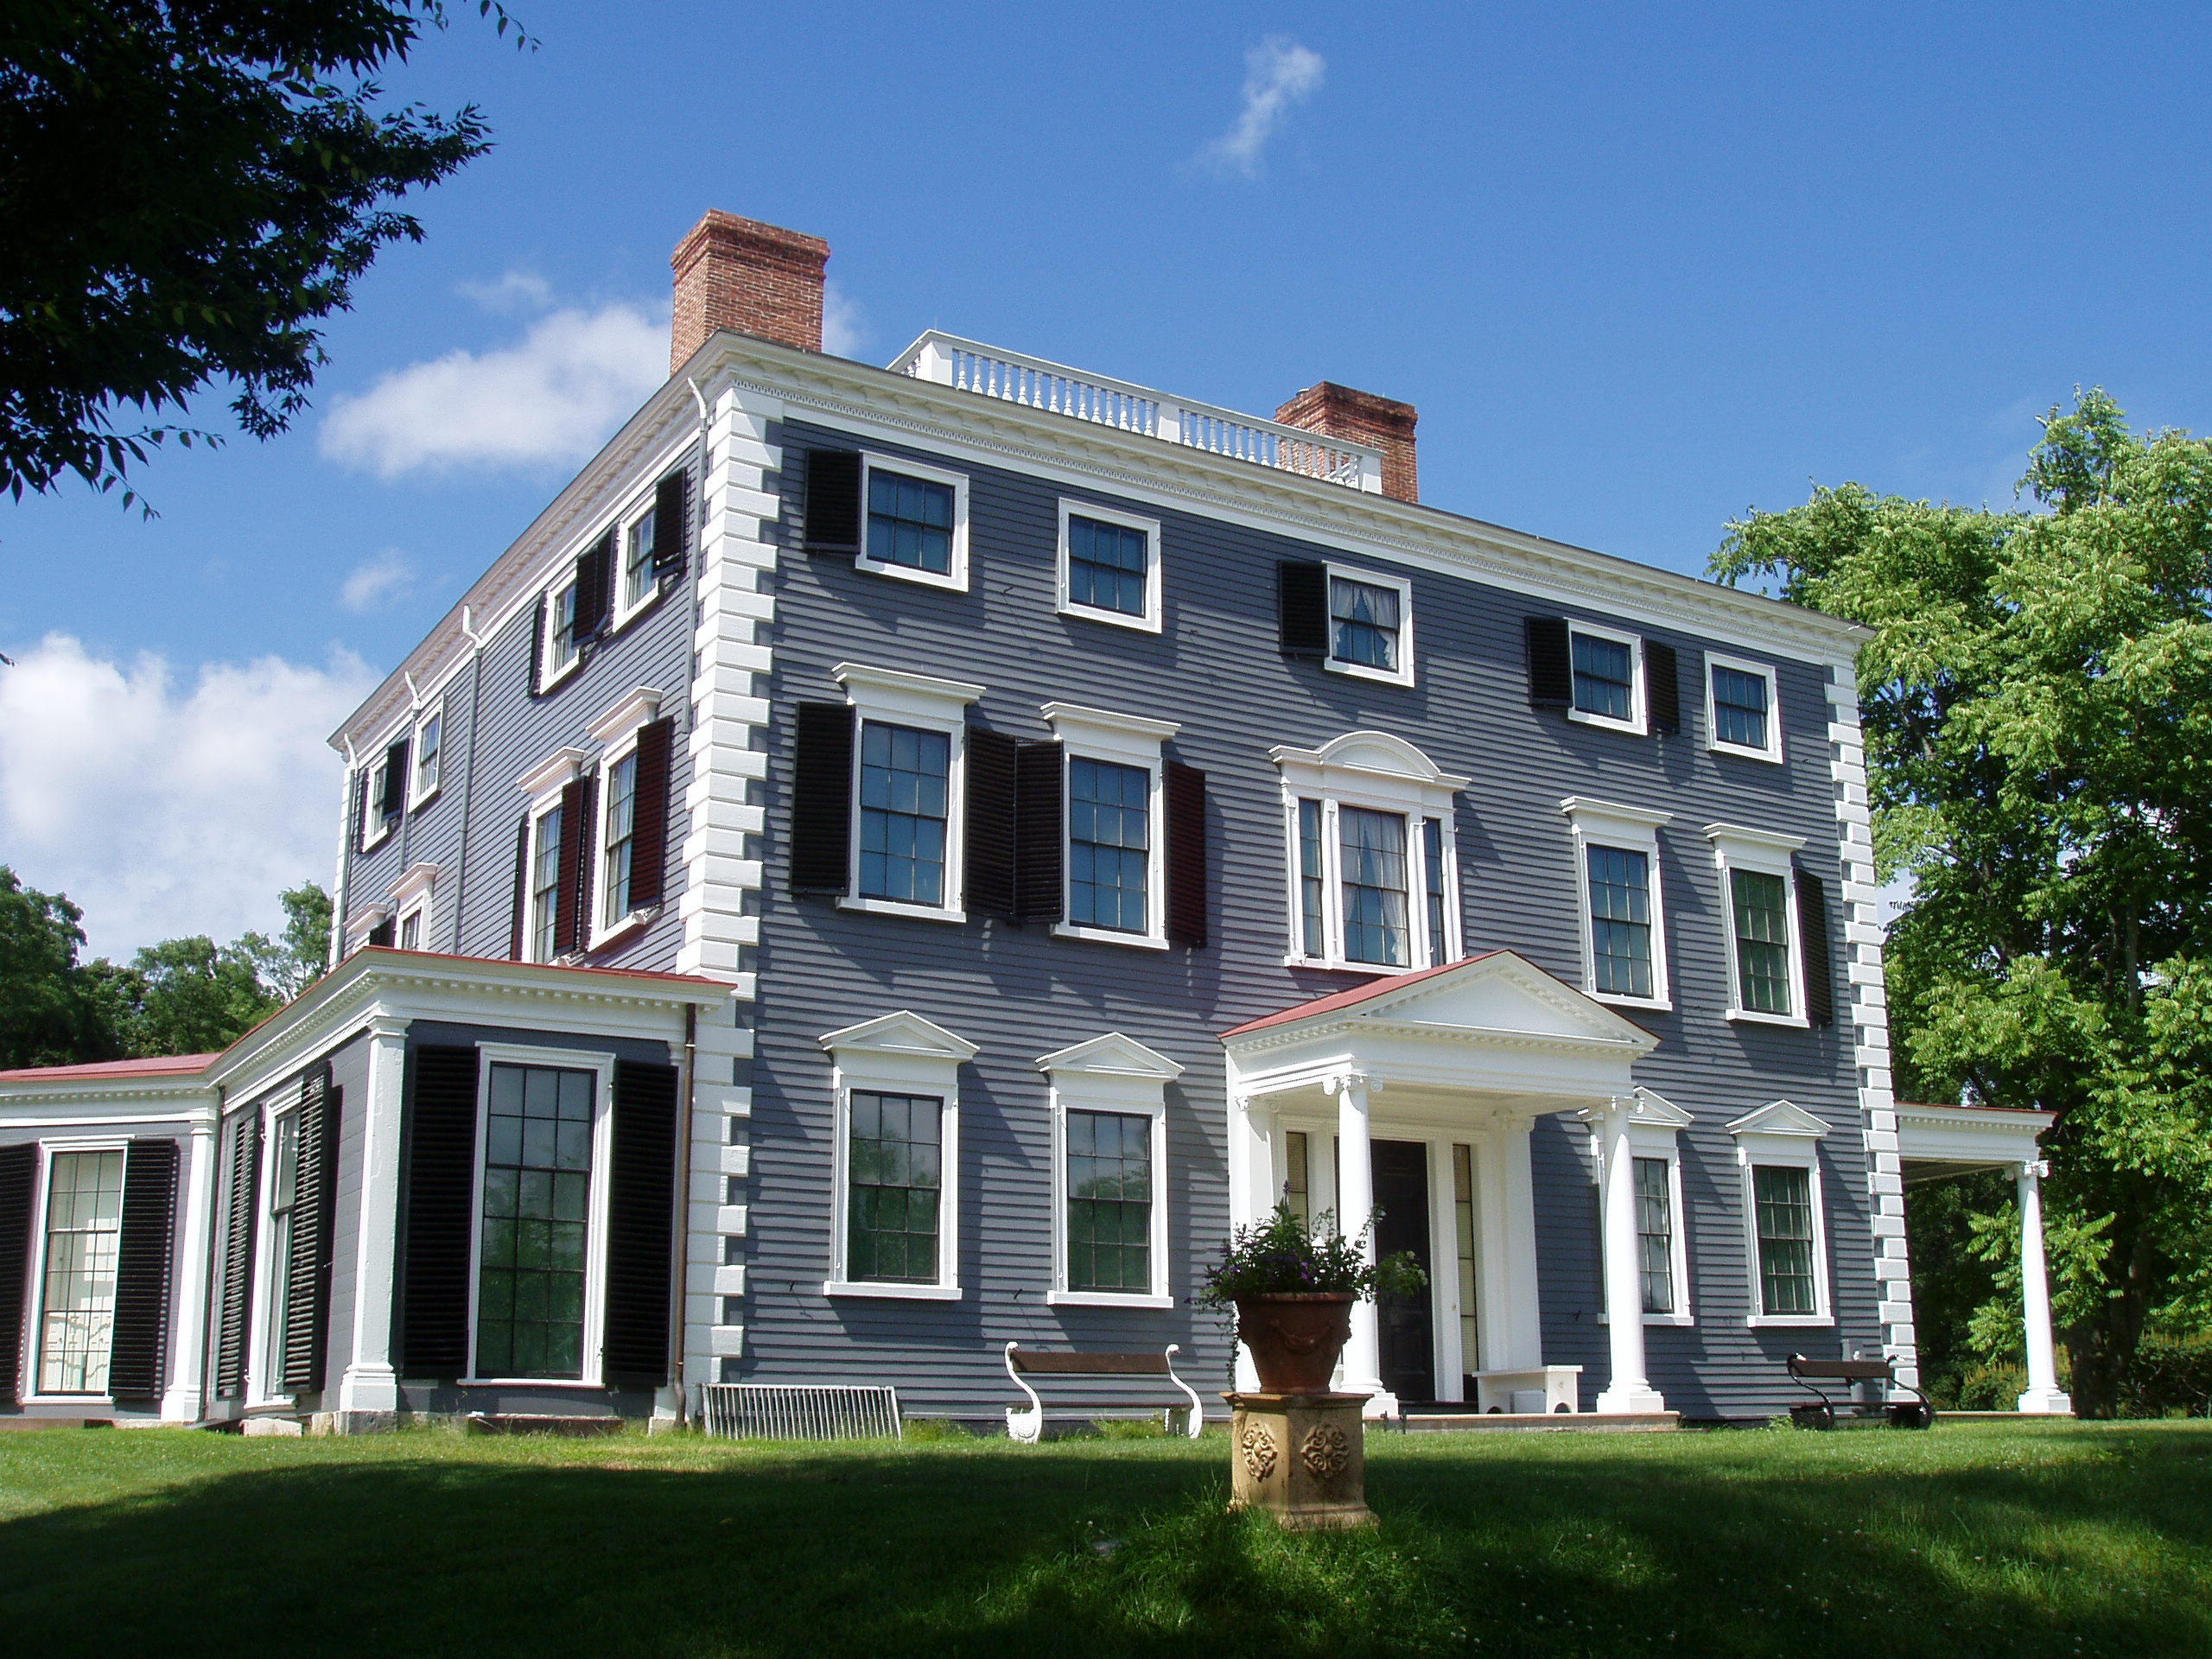 File:Codman House, Lincoln, Massachusetts.JPG - Wikimedia ...